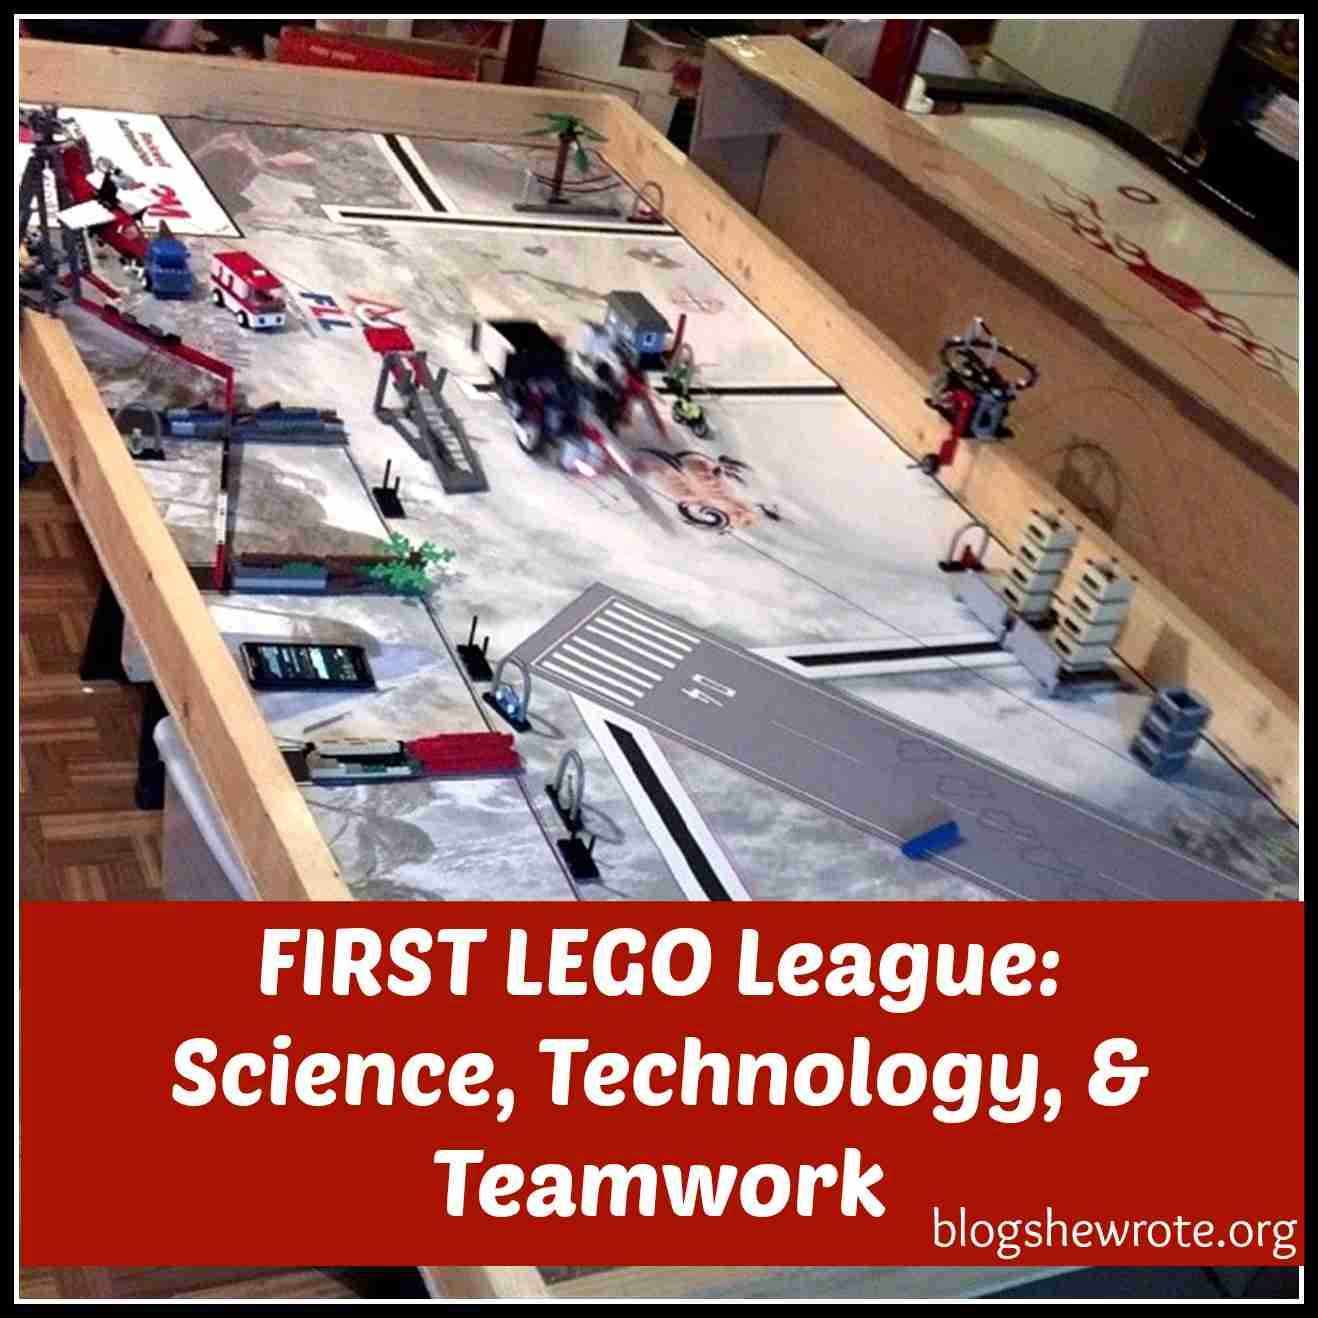 Blog, She Wrote: FIRST LEGO League- Science, Technology, & Teamwork